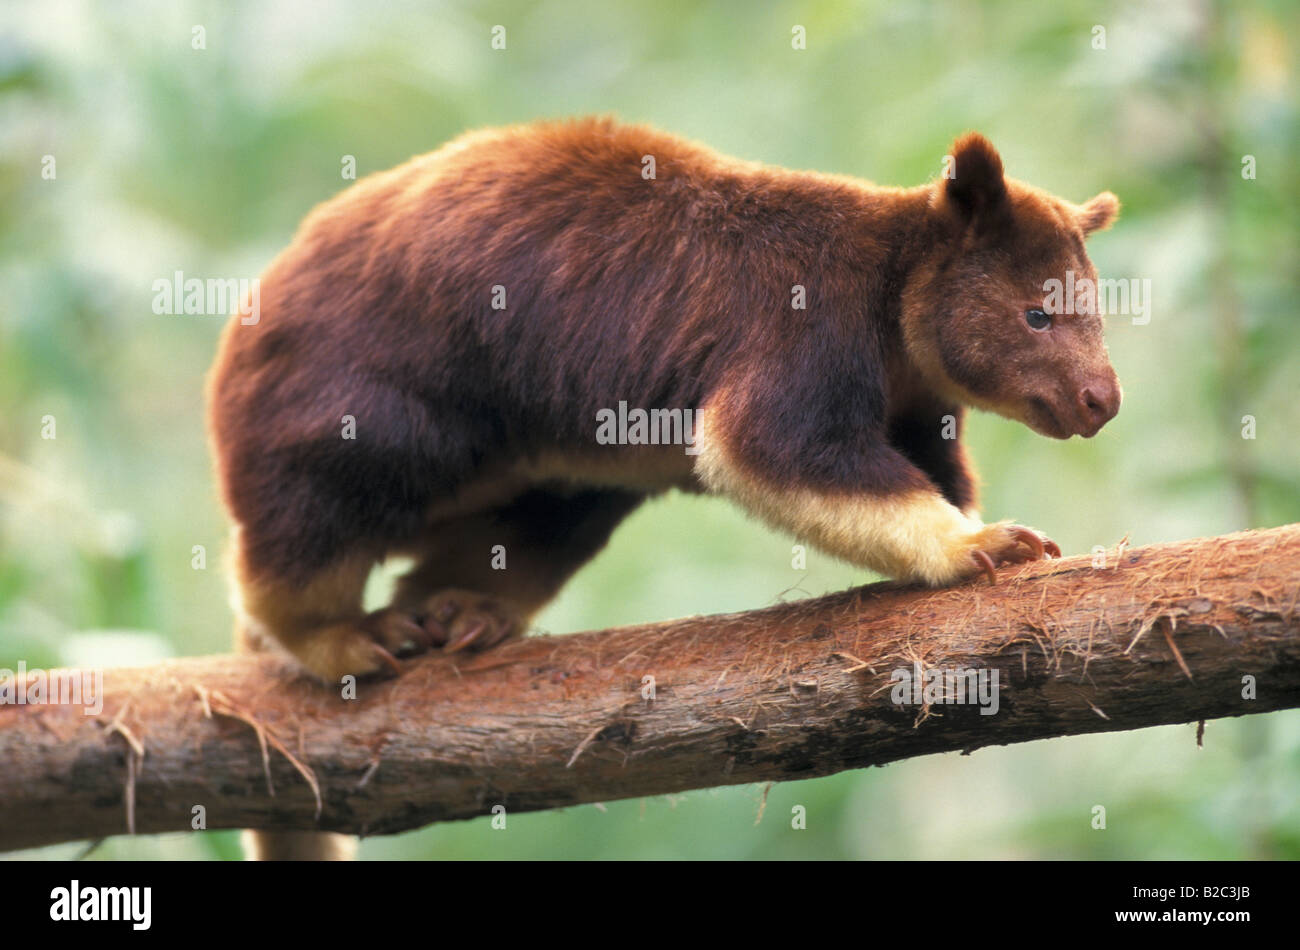 goodfellows tree kangaroo dendrolagus goodfellowi buergersi adult on a branch of